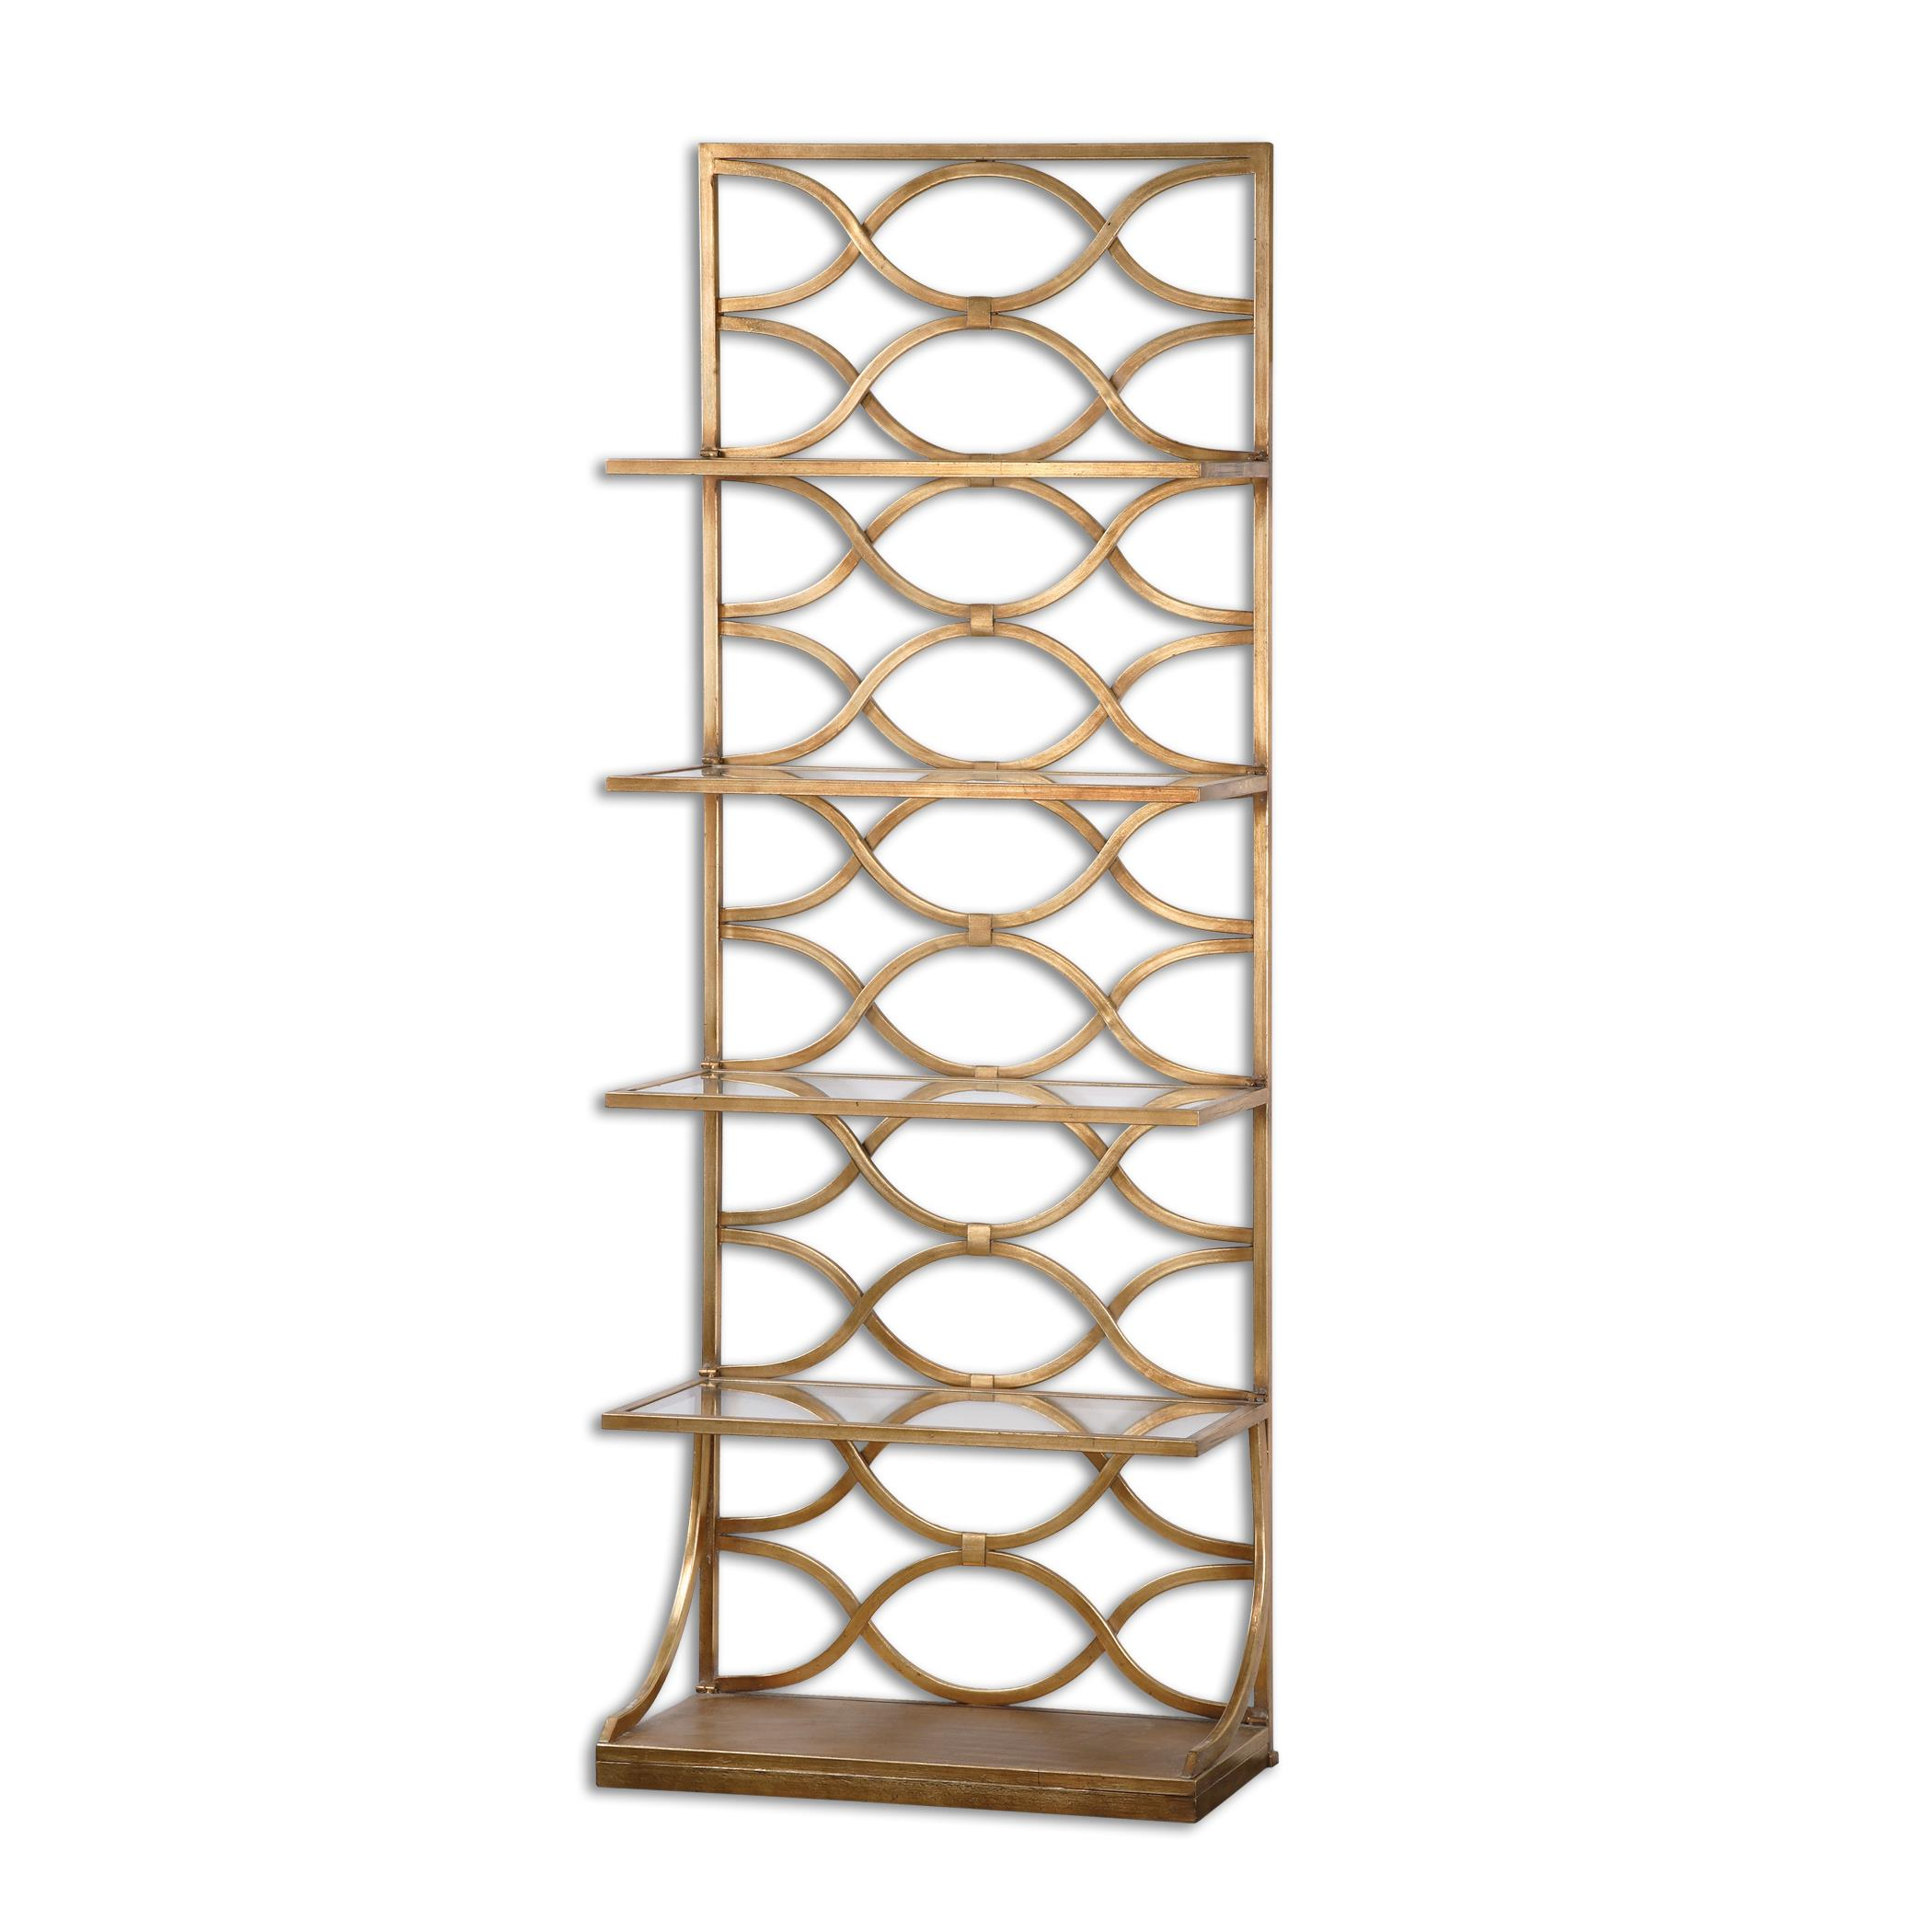 Uttermost Accent Furniture Lashaya Gold Etagere - Item Number: 24447